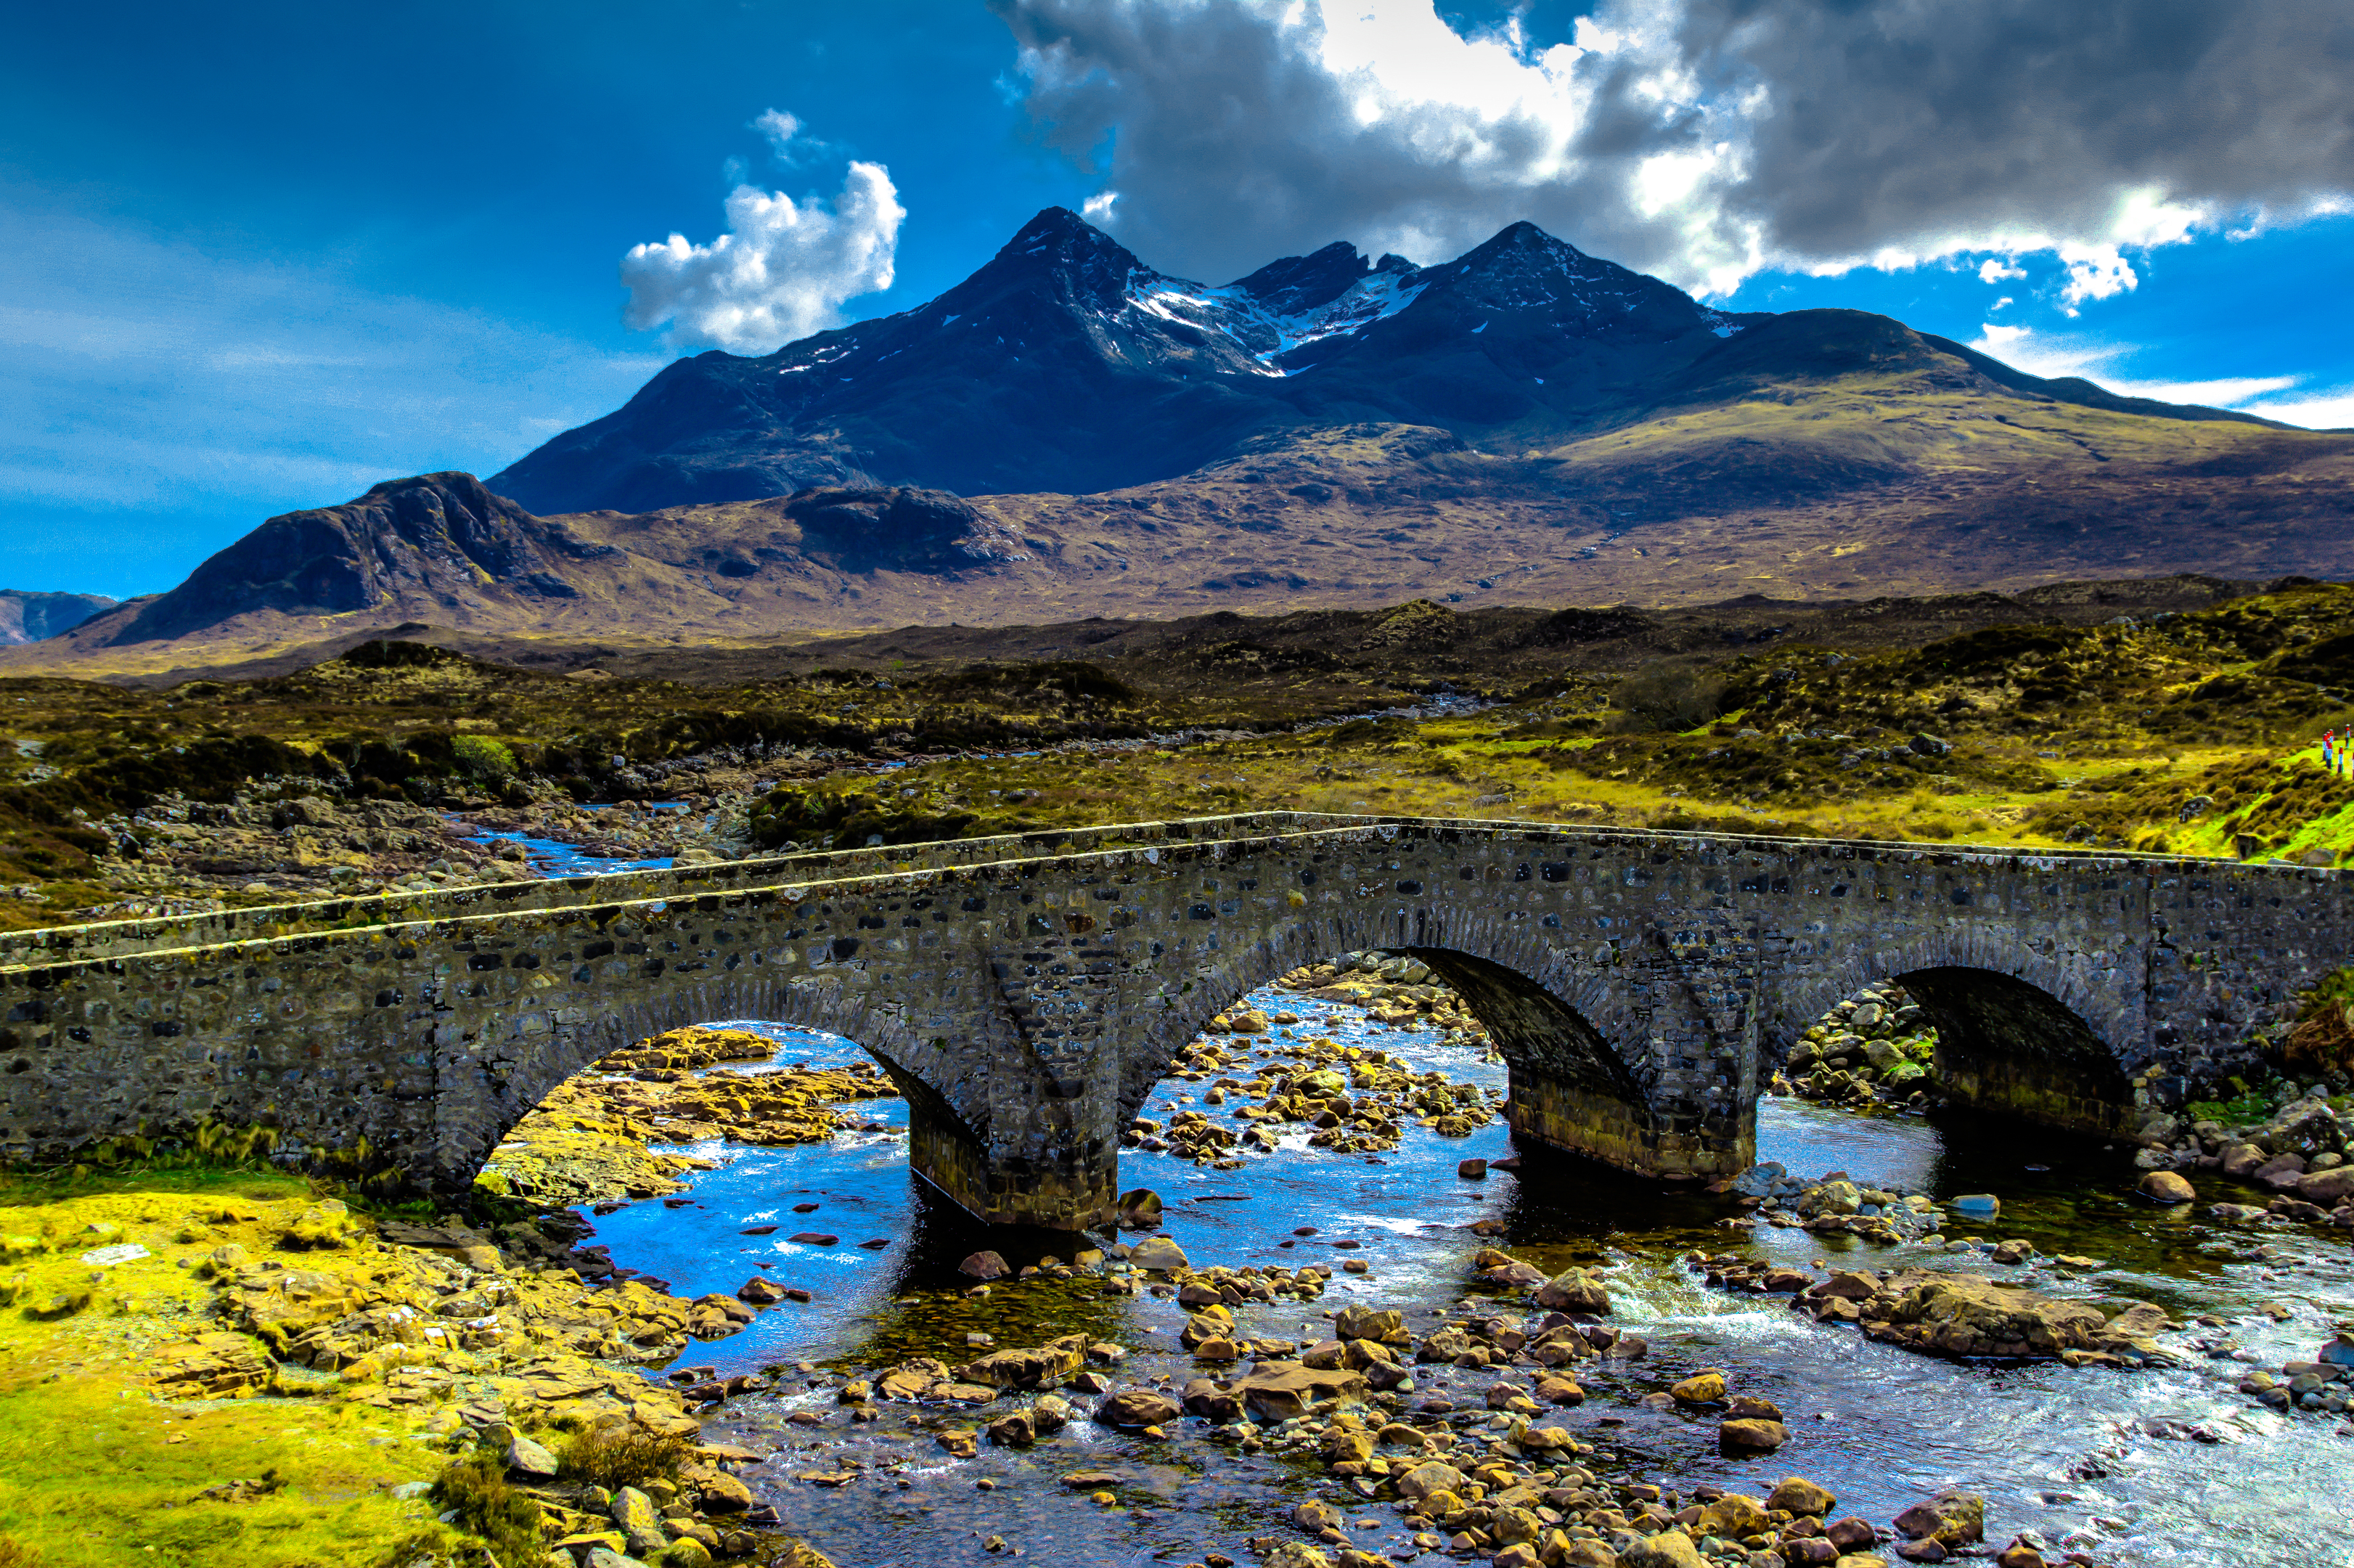 The Isle of Skye is one of Scotland's most popular holiday destinations.